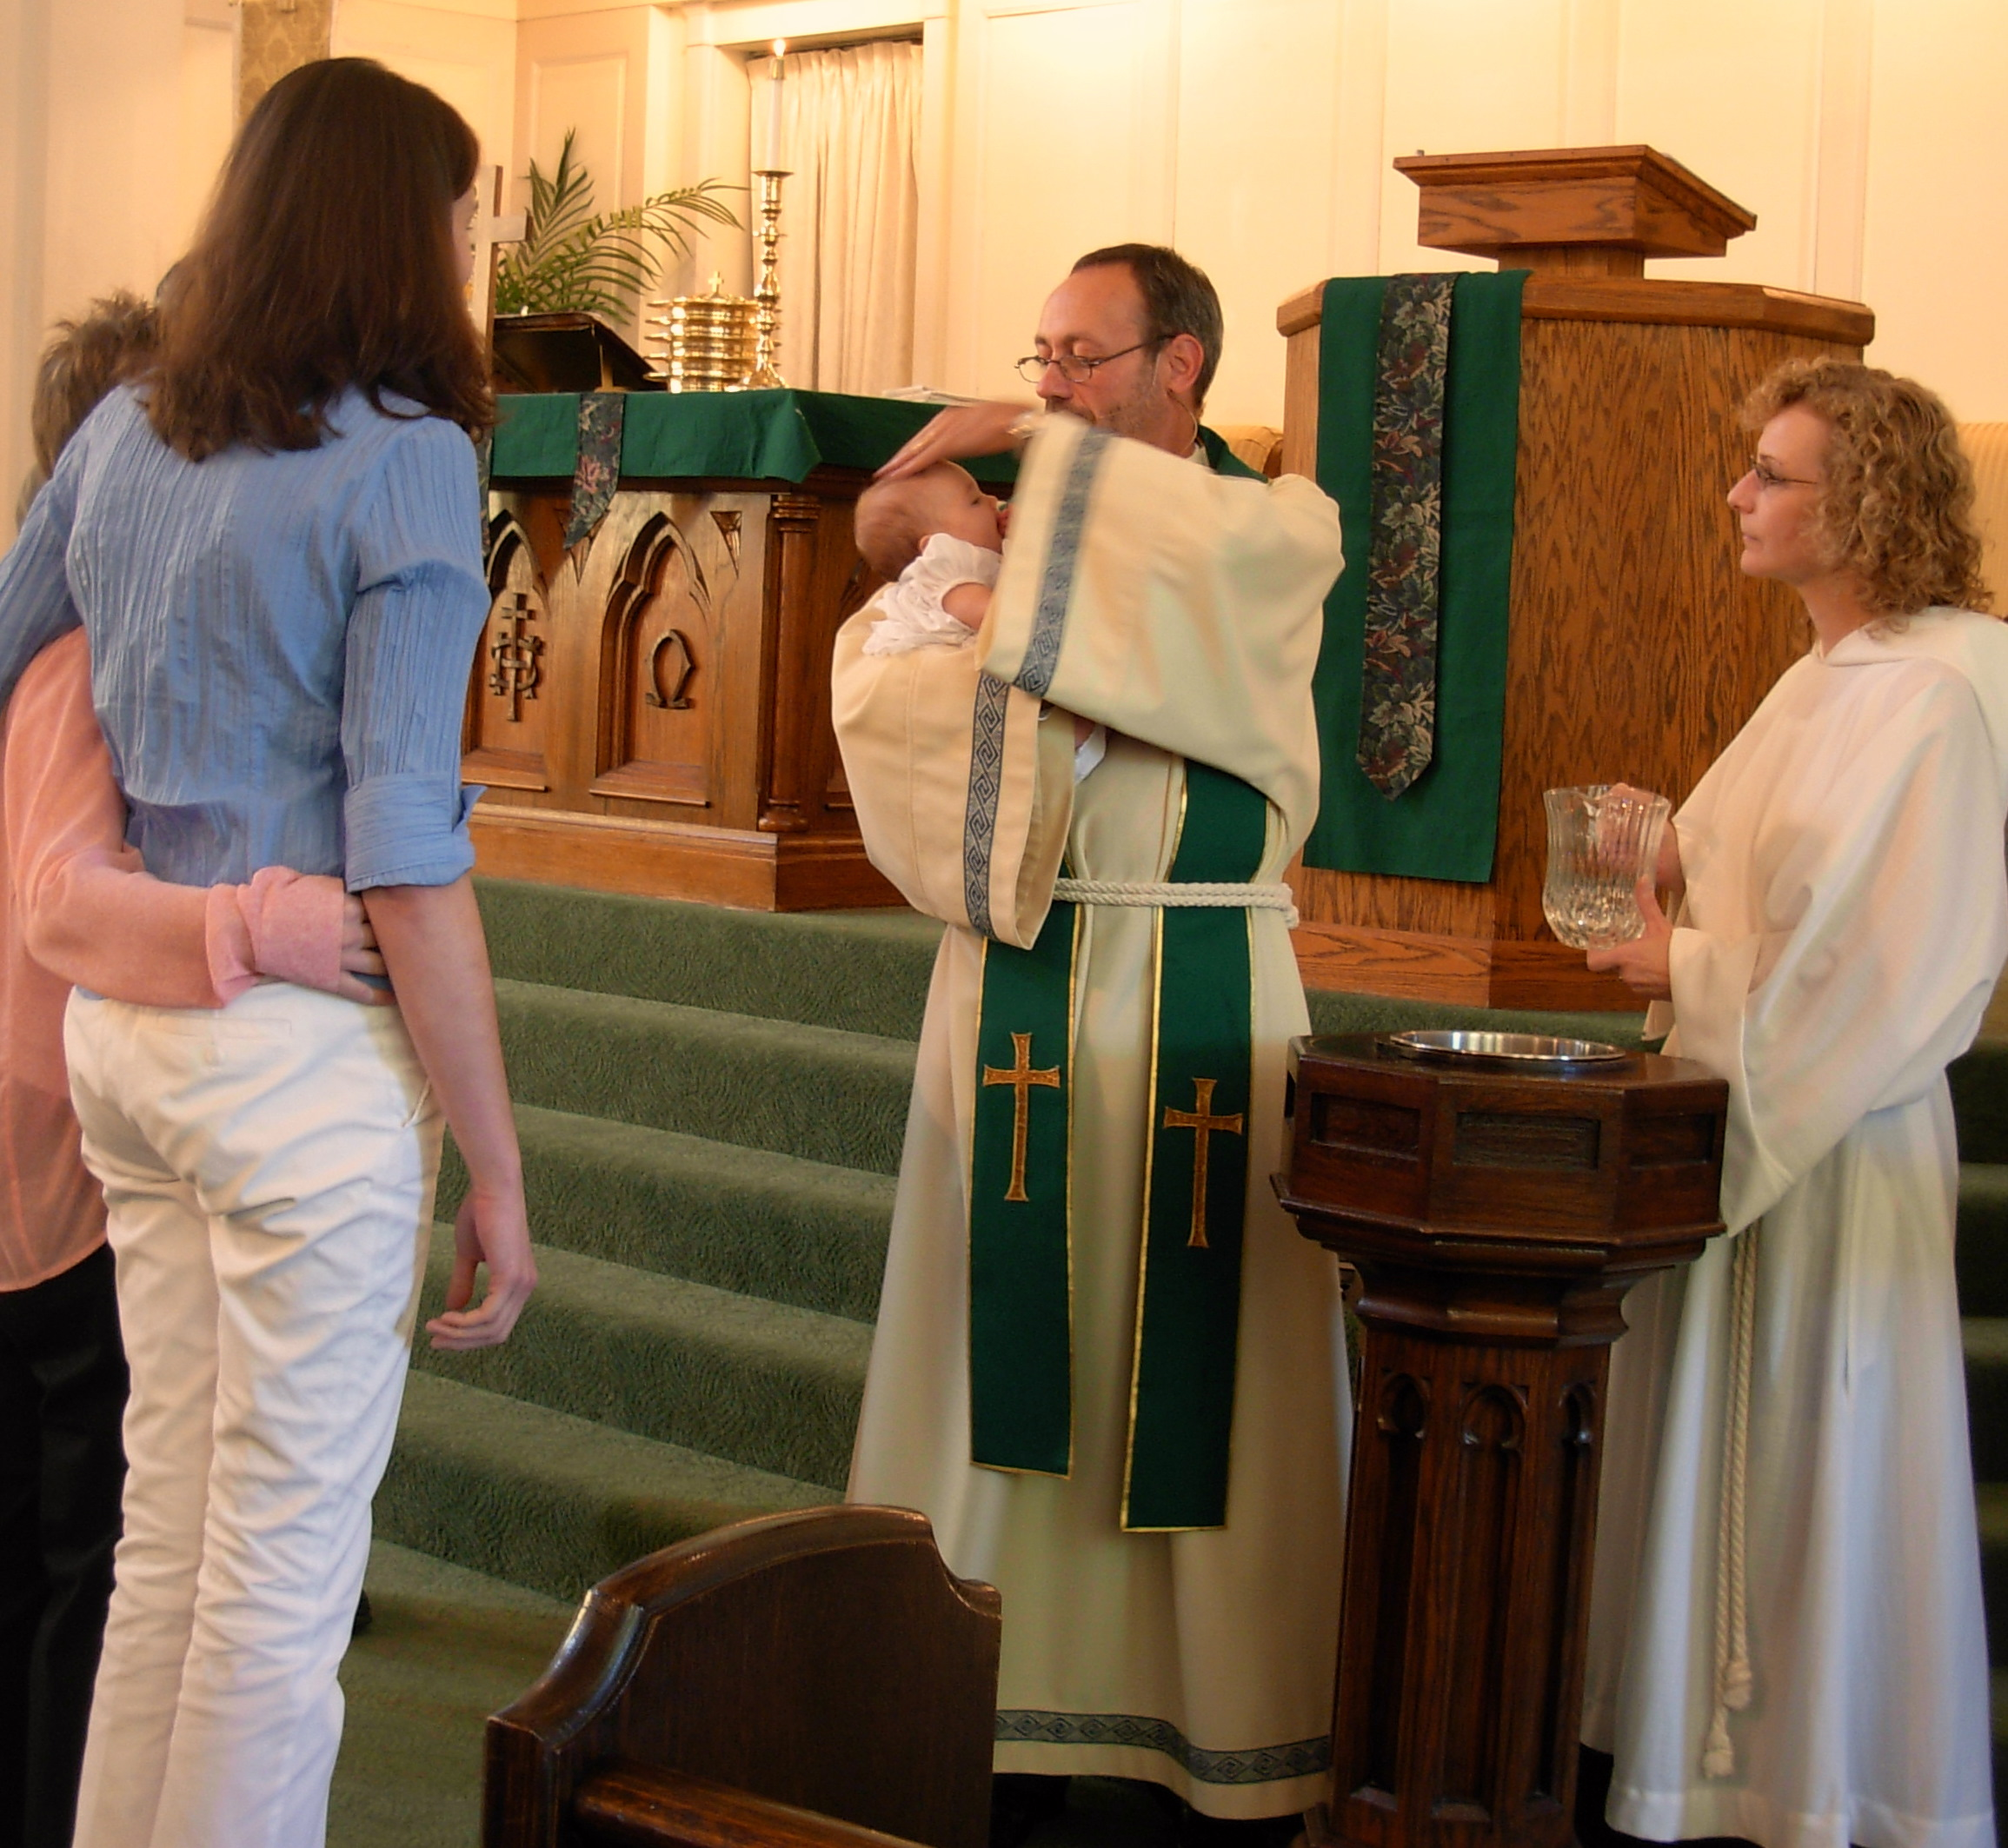 Infant baptism in the Metropolitan Community Church.